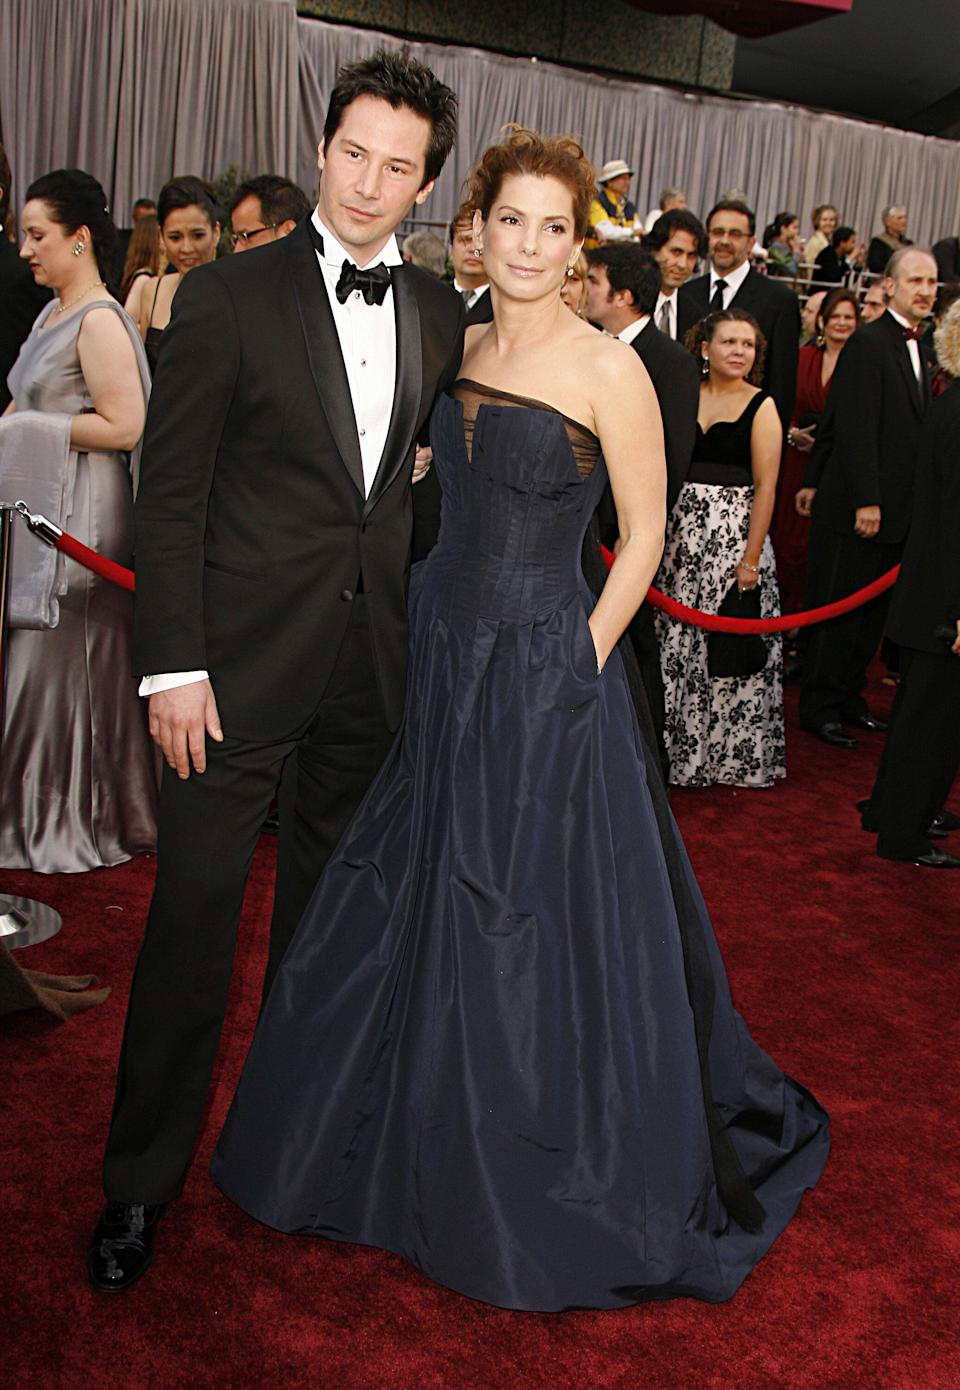 Reeves and Sandra Bullock arrive at the 78th Annual Academy Awards at the Kodak Theatre in Hollywood.